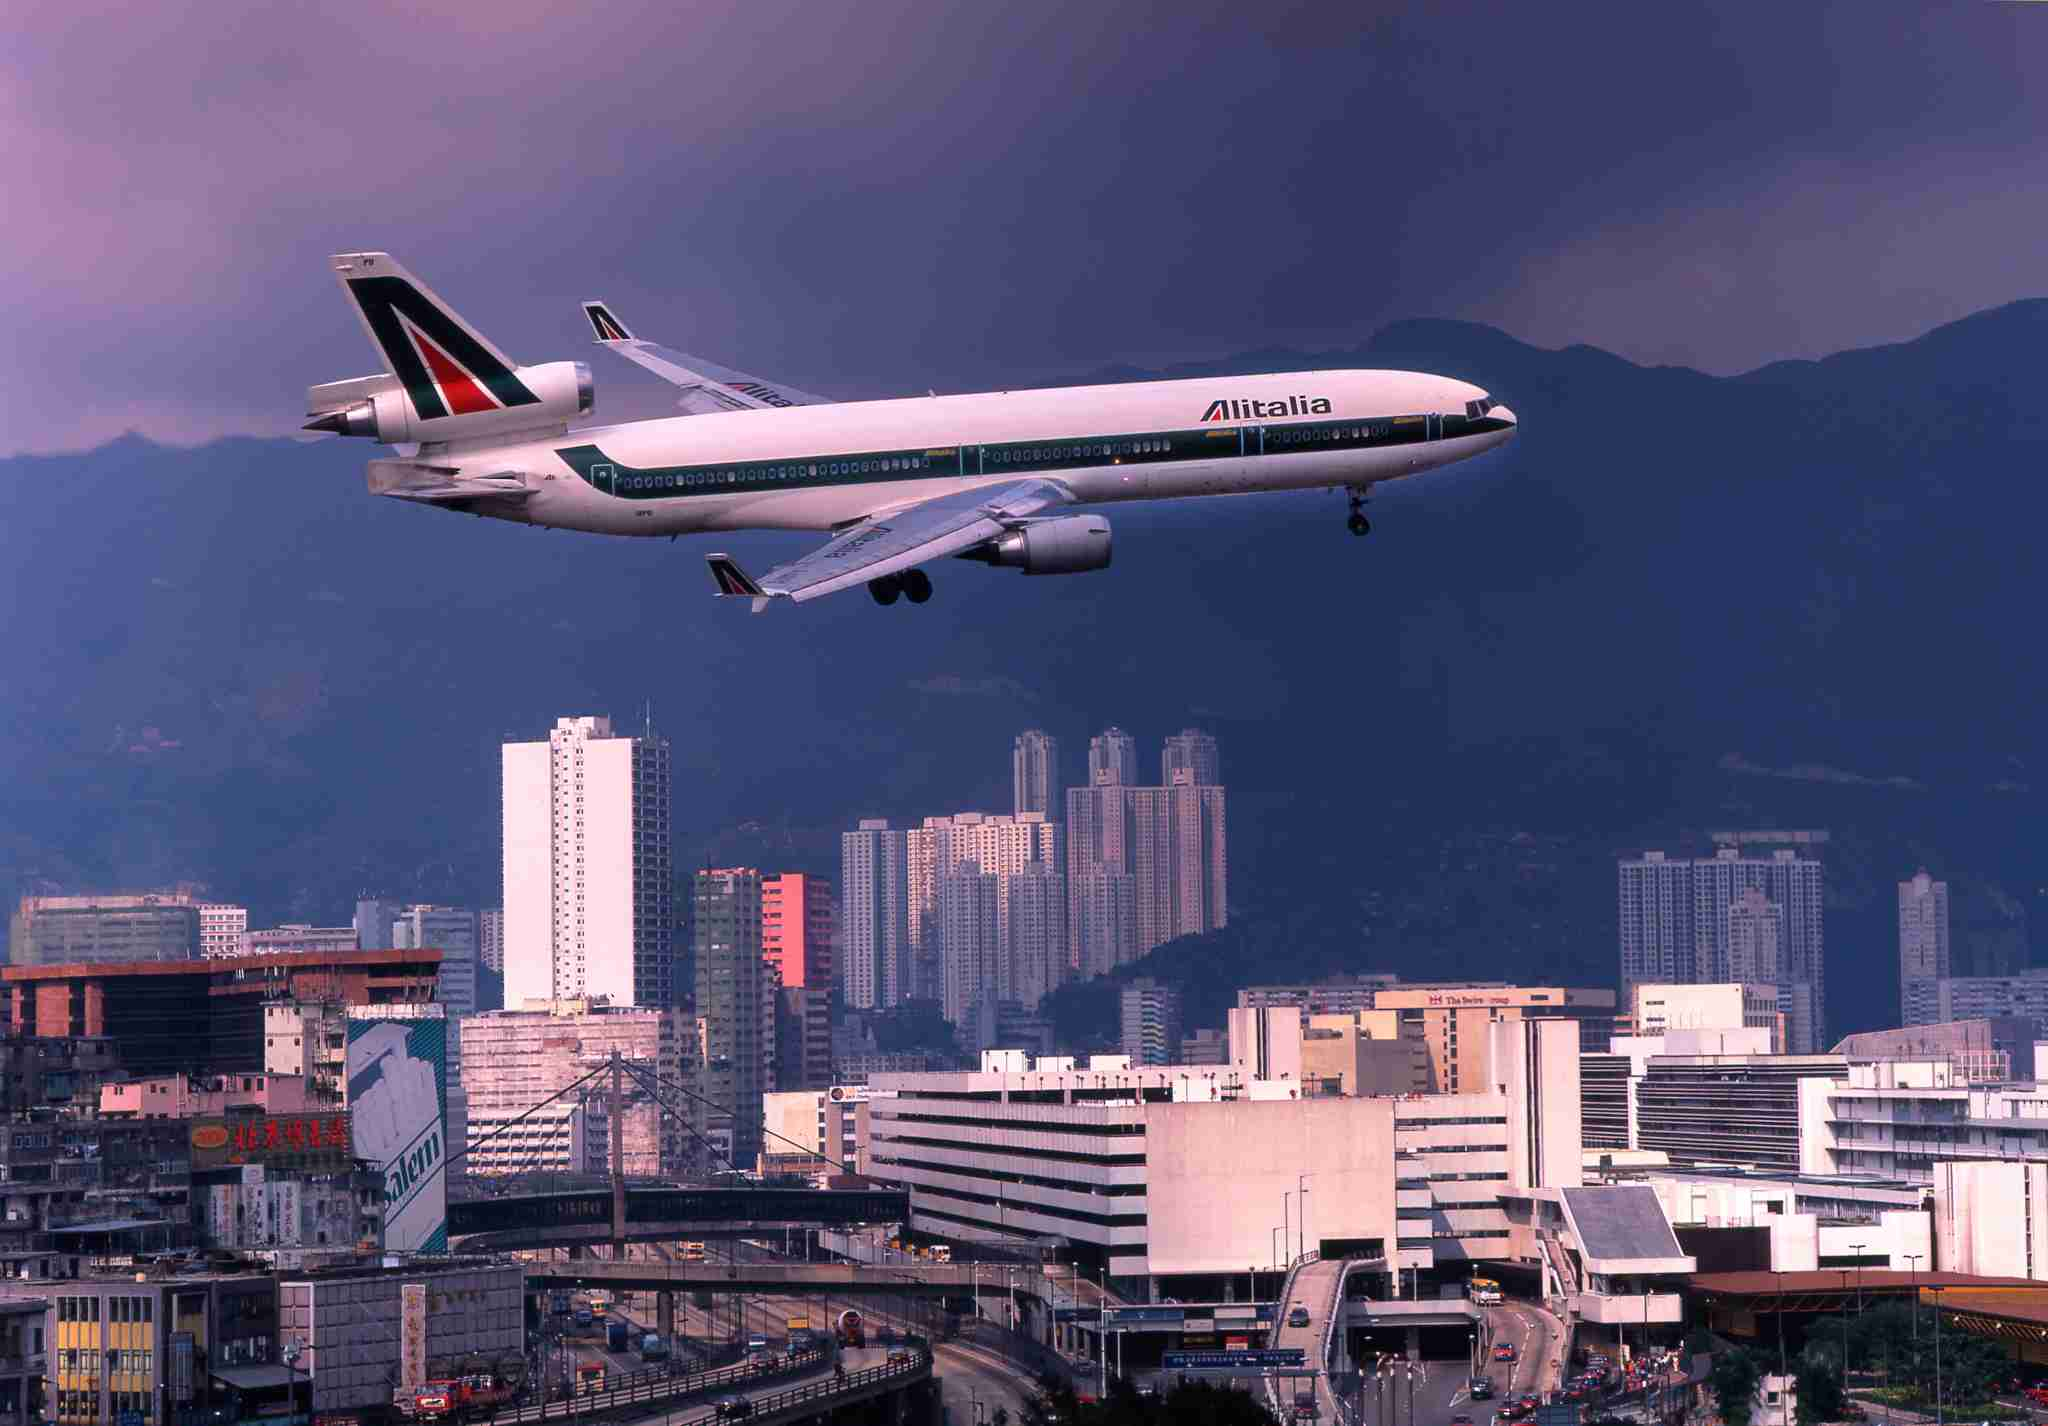 Alitalia Md-11 On Approach To Kai Tak Airport, Hong Kong, Asia. (Photo by: Education Images/UIG via Getty Images)